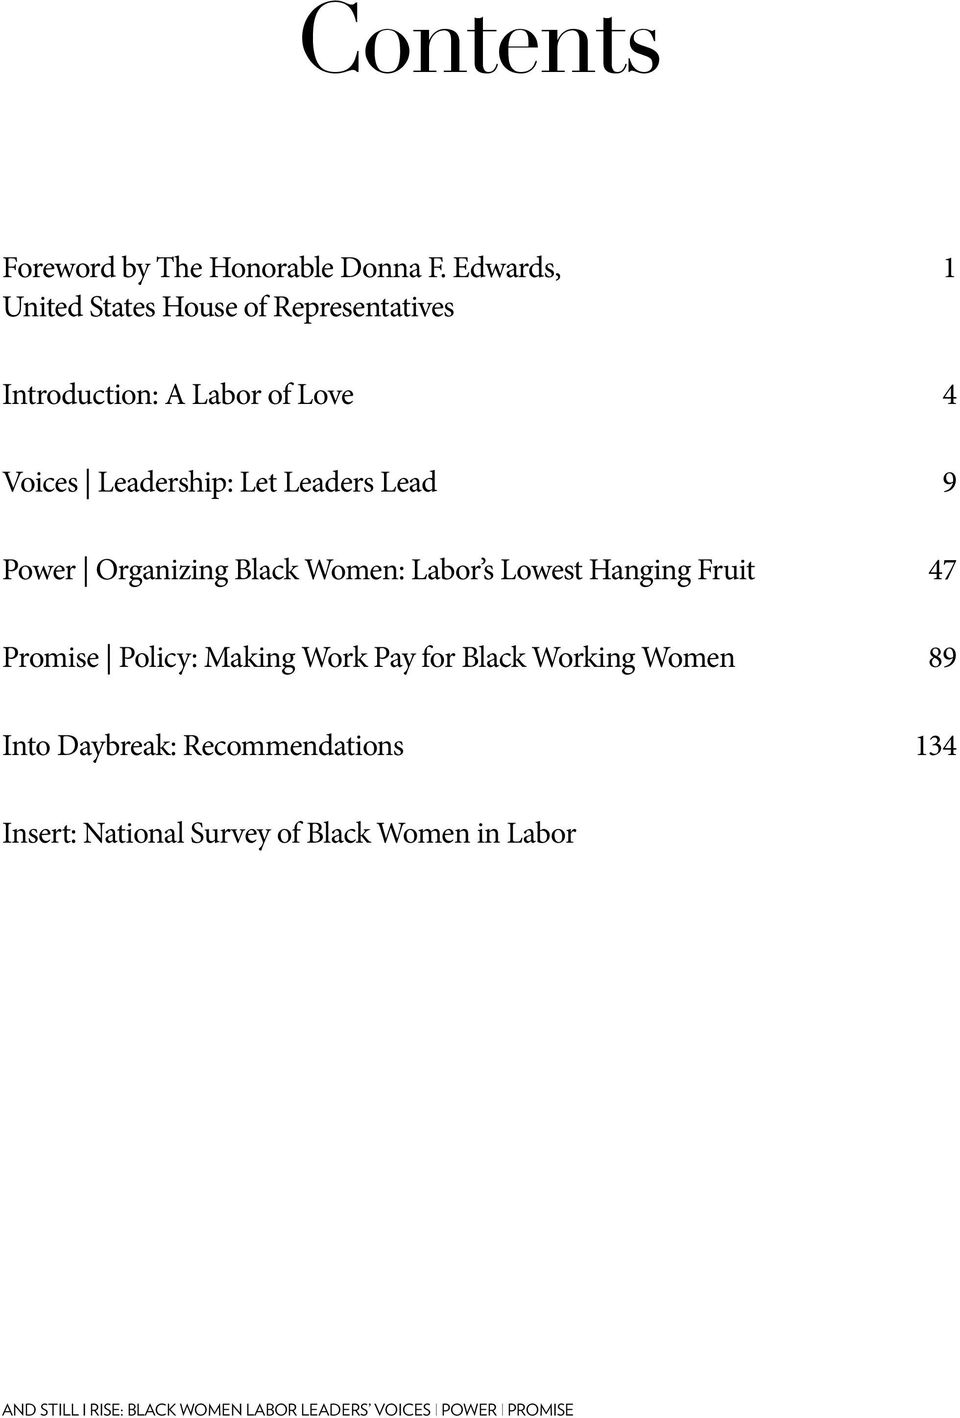 Leaders Lead 9 Power Organizing Black Women: Labor s Lowest Hanging Fruit 47 Promise Policy: Making Work Pay